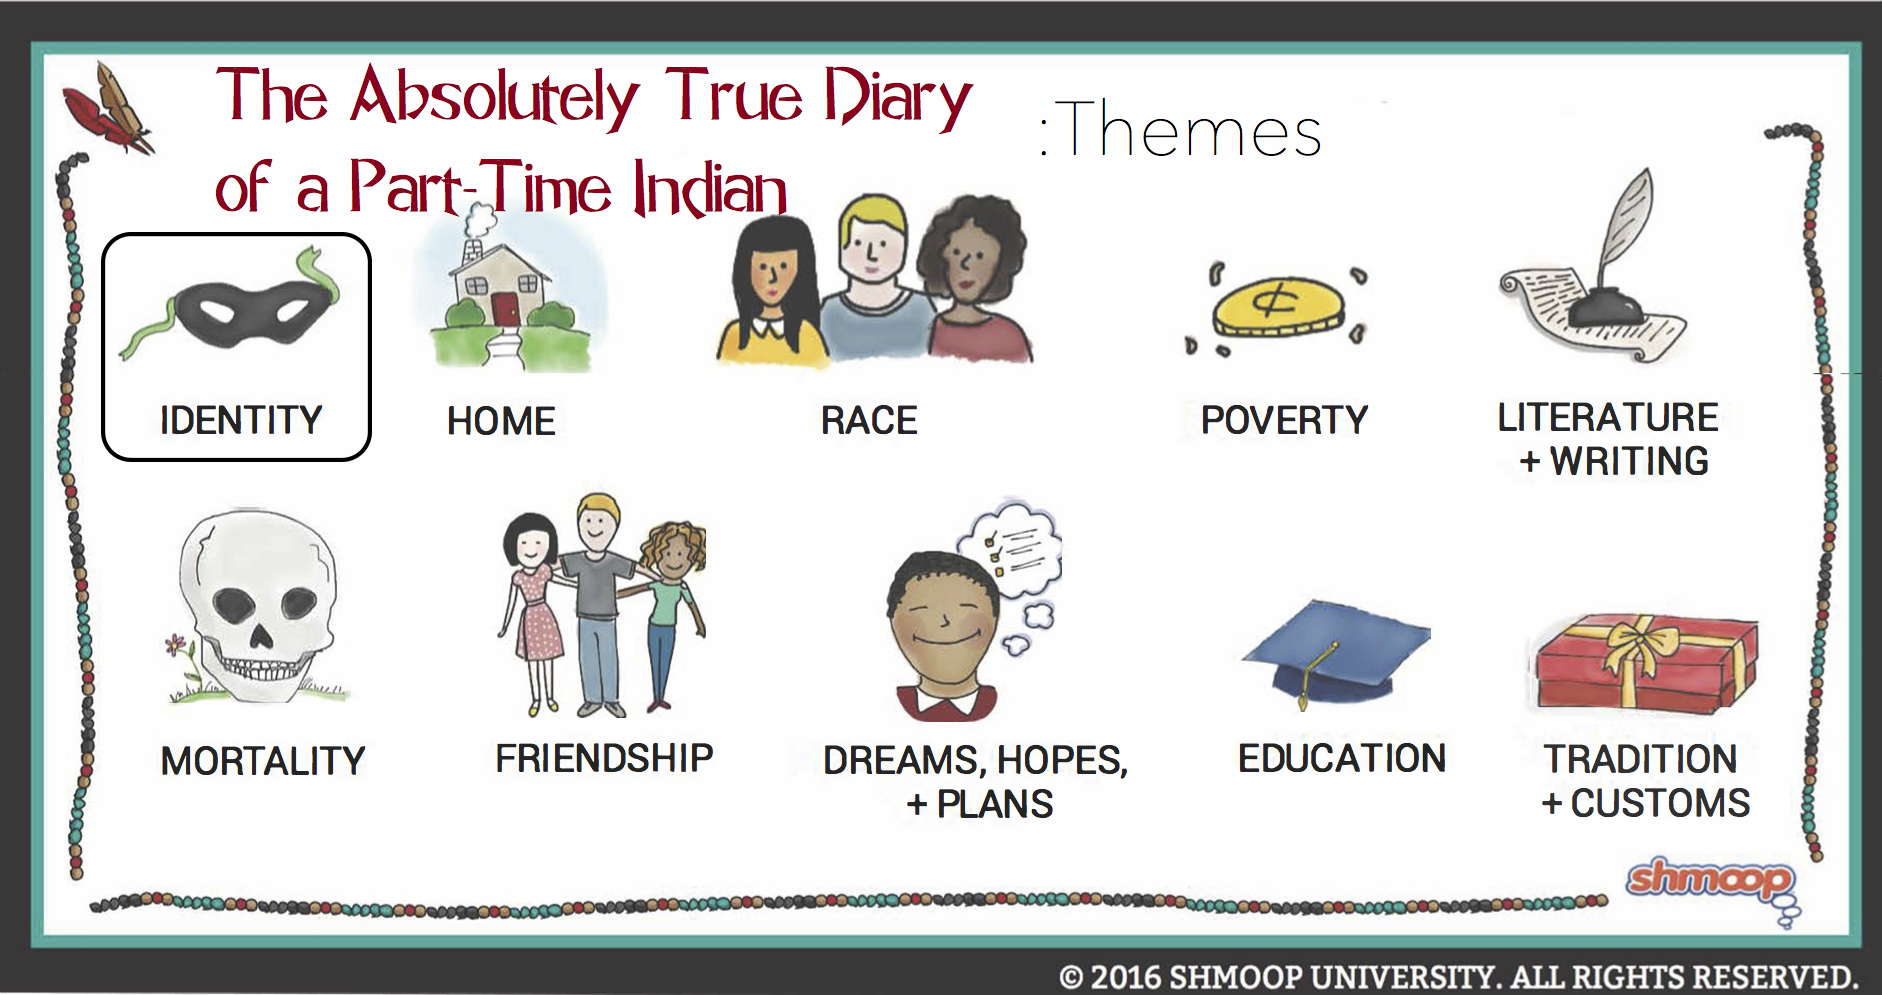 the true diary of a part time indian essay Posts about absolutely true diary of a part-time indian written by renaissance.